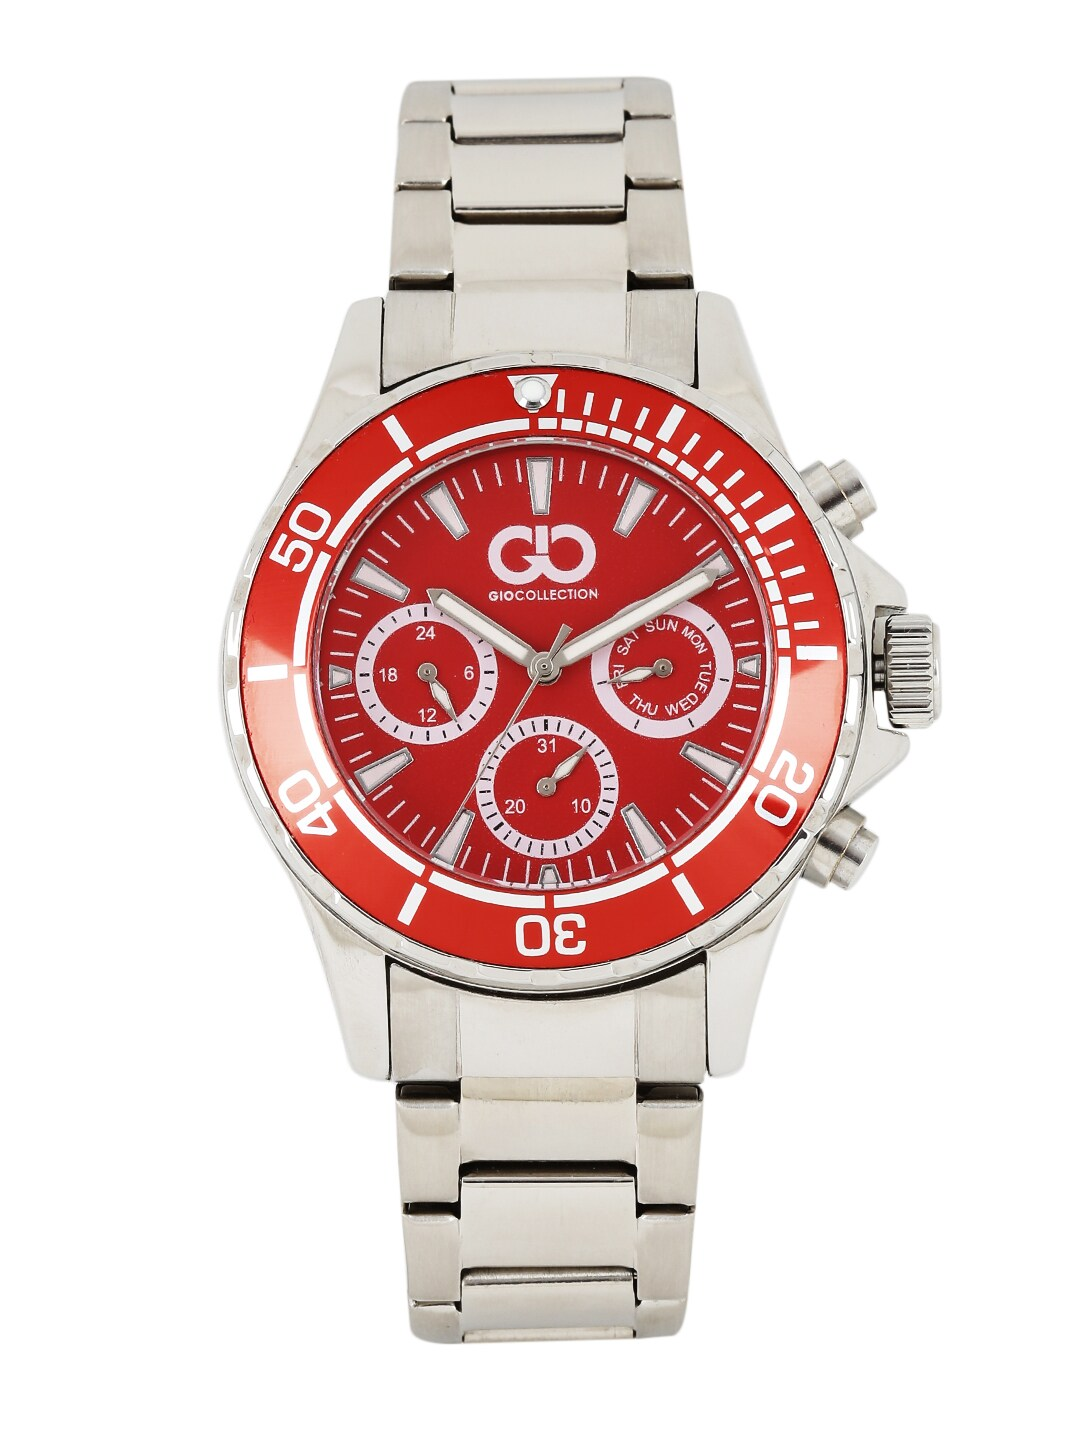 GIO COLLECTION Men Red Analogue Watch GAD0041-B image